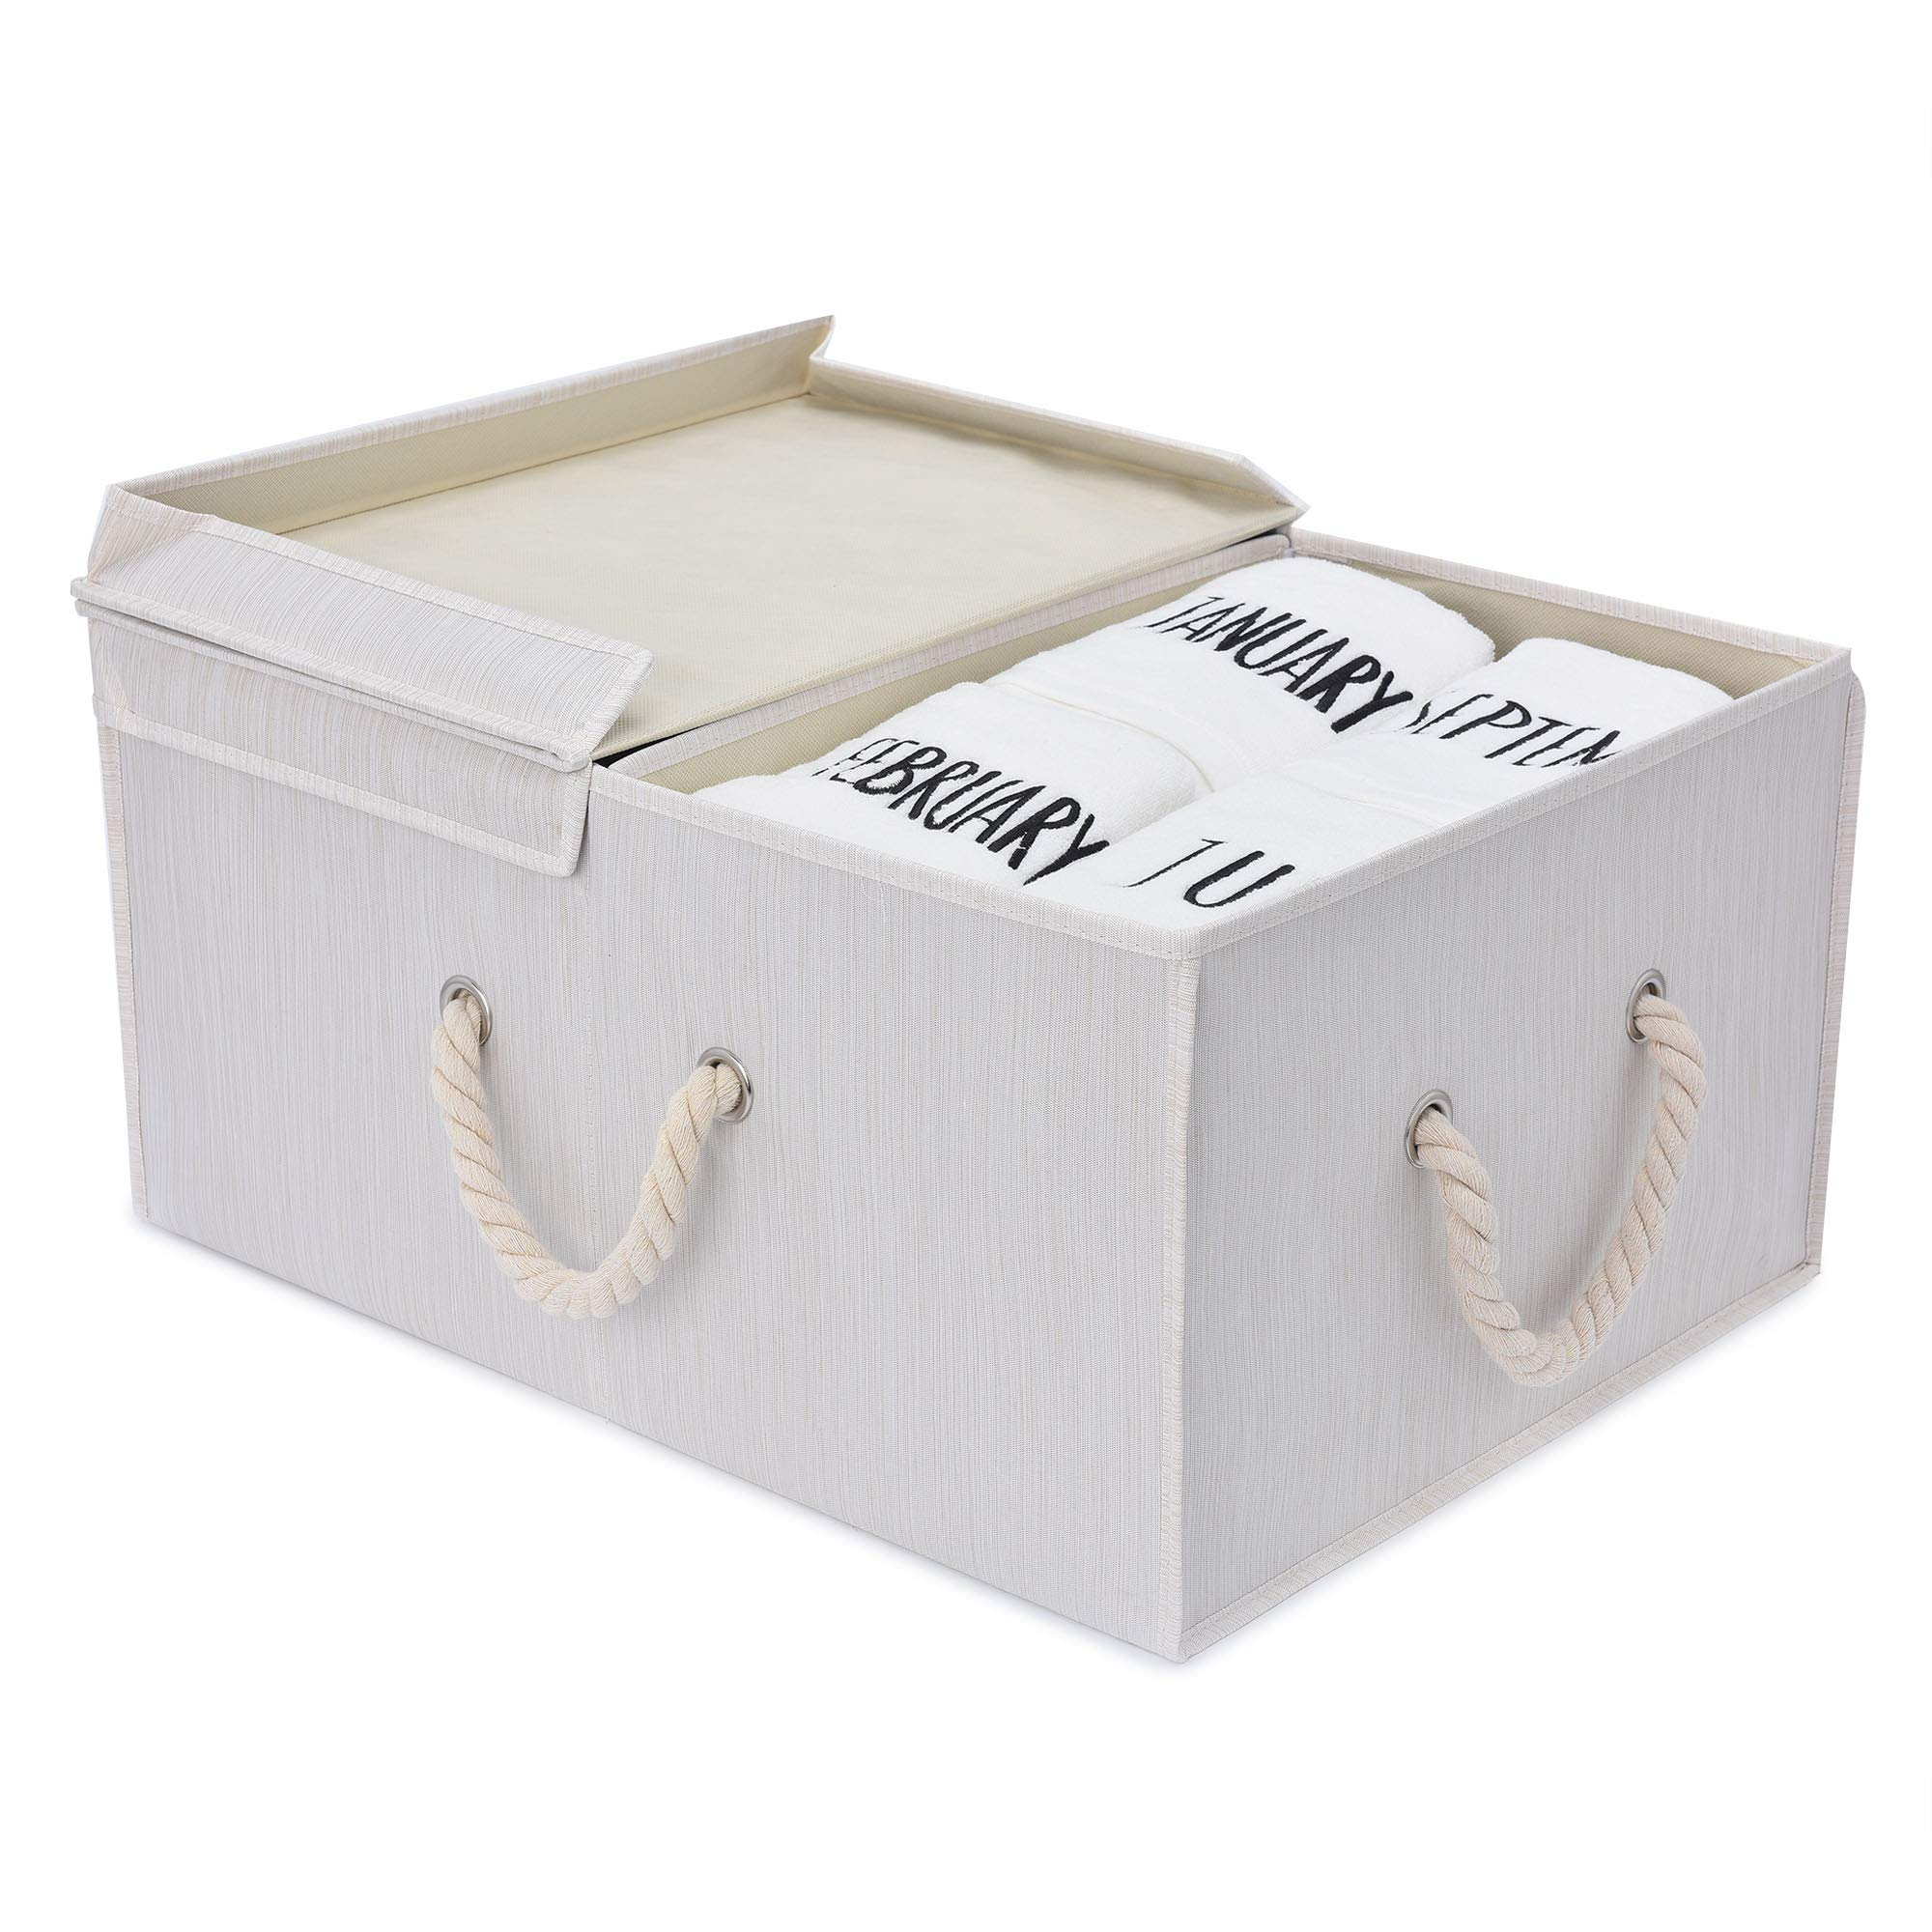 StorageWorks Storage Box with Lid and Strong Cotton Rope Handle, Foldable Clothes Closet Organizer, White, Bamboo Style, Jumbo, 65L Huge Capacity